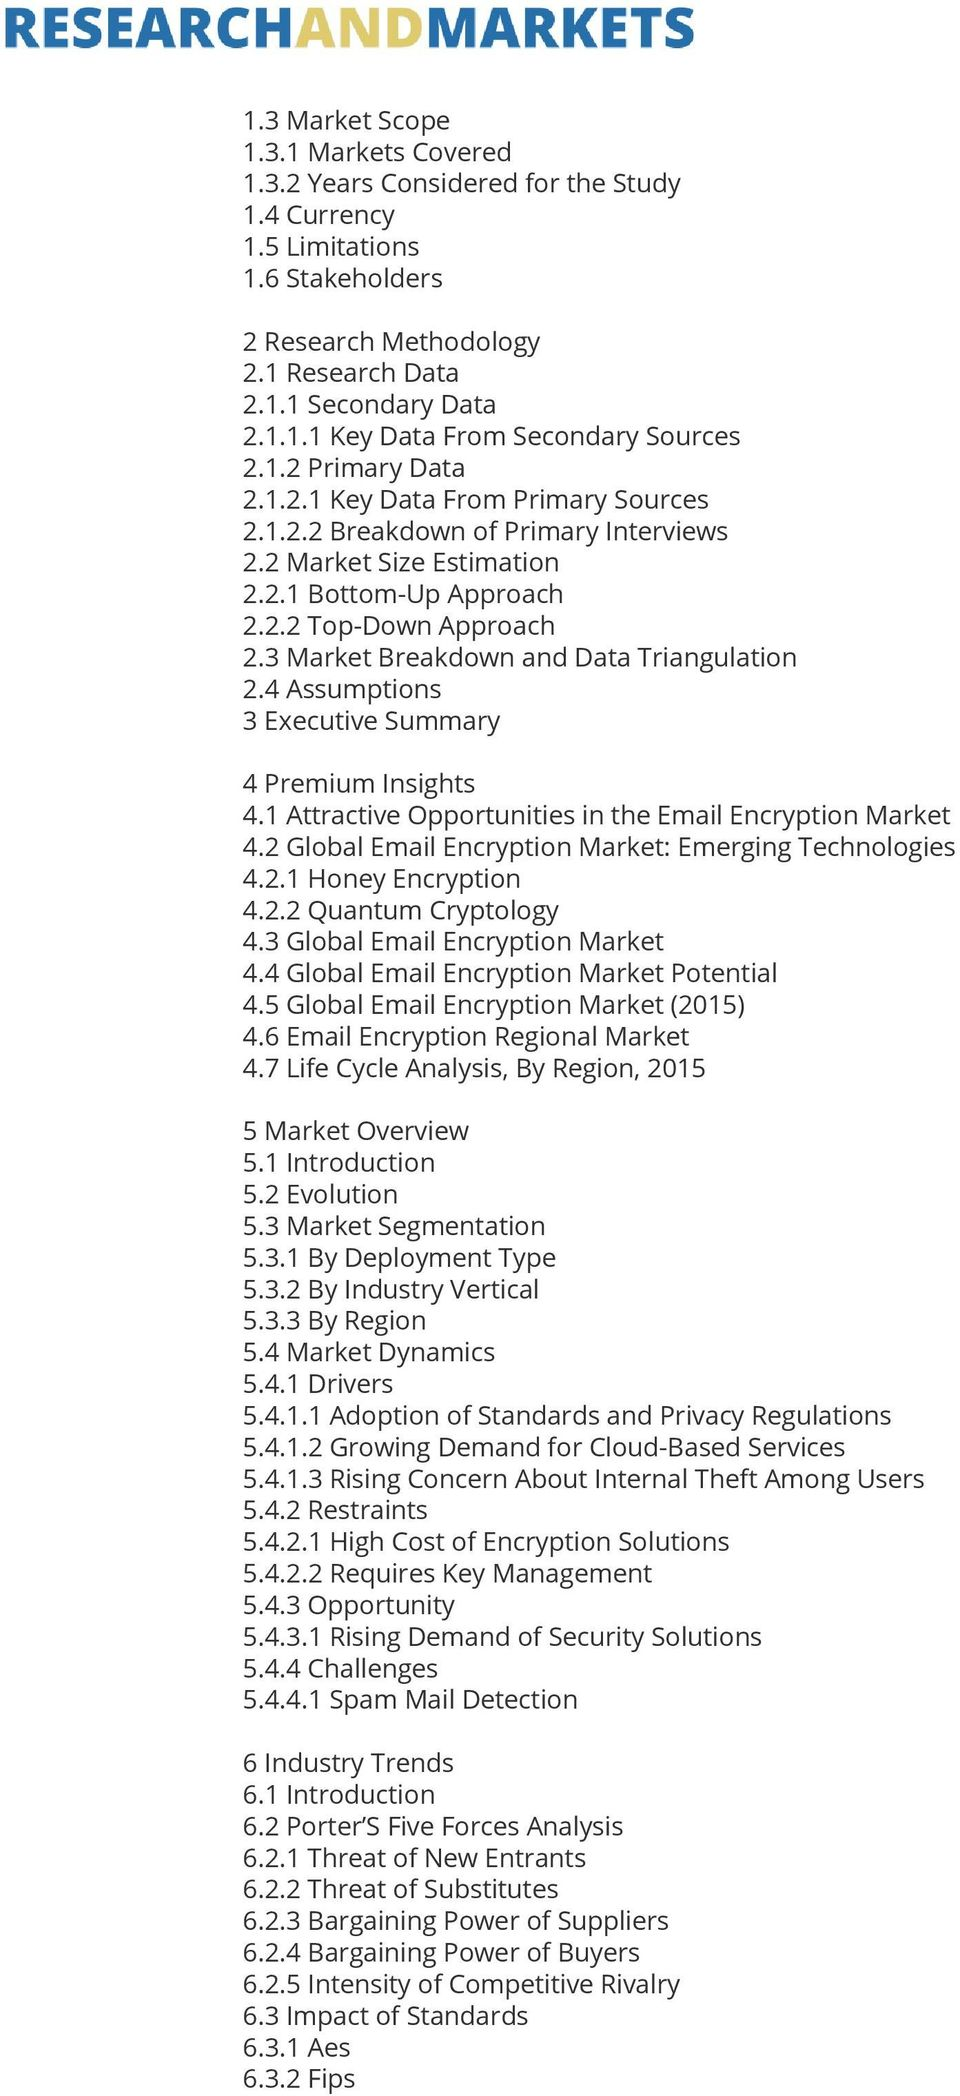 3 Market Breakdown and Data Triangulation 2.4 Assumptions 3 Executive Summary 4 Premium Insights 4.1 Attractive Opportunities in the Email Encryption Market 4.